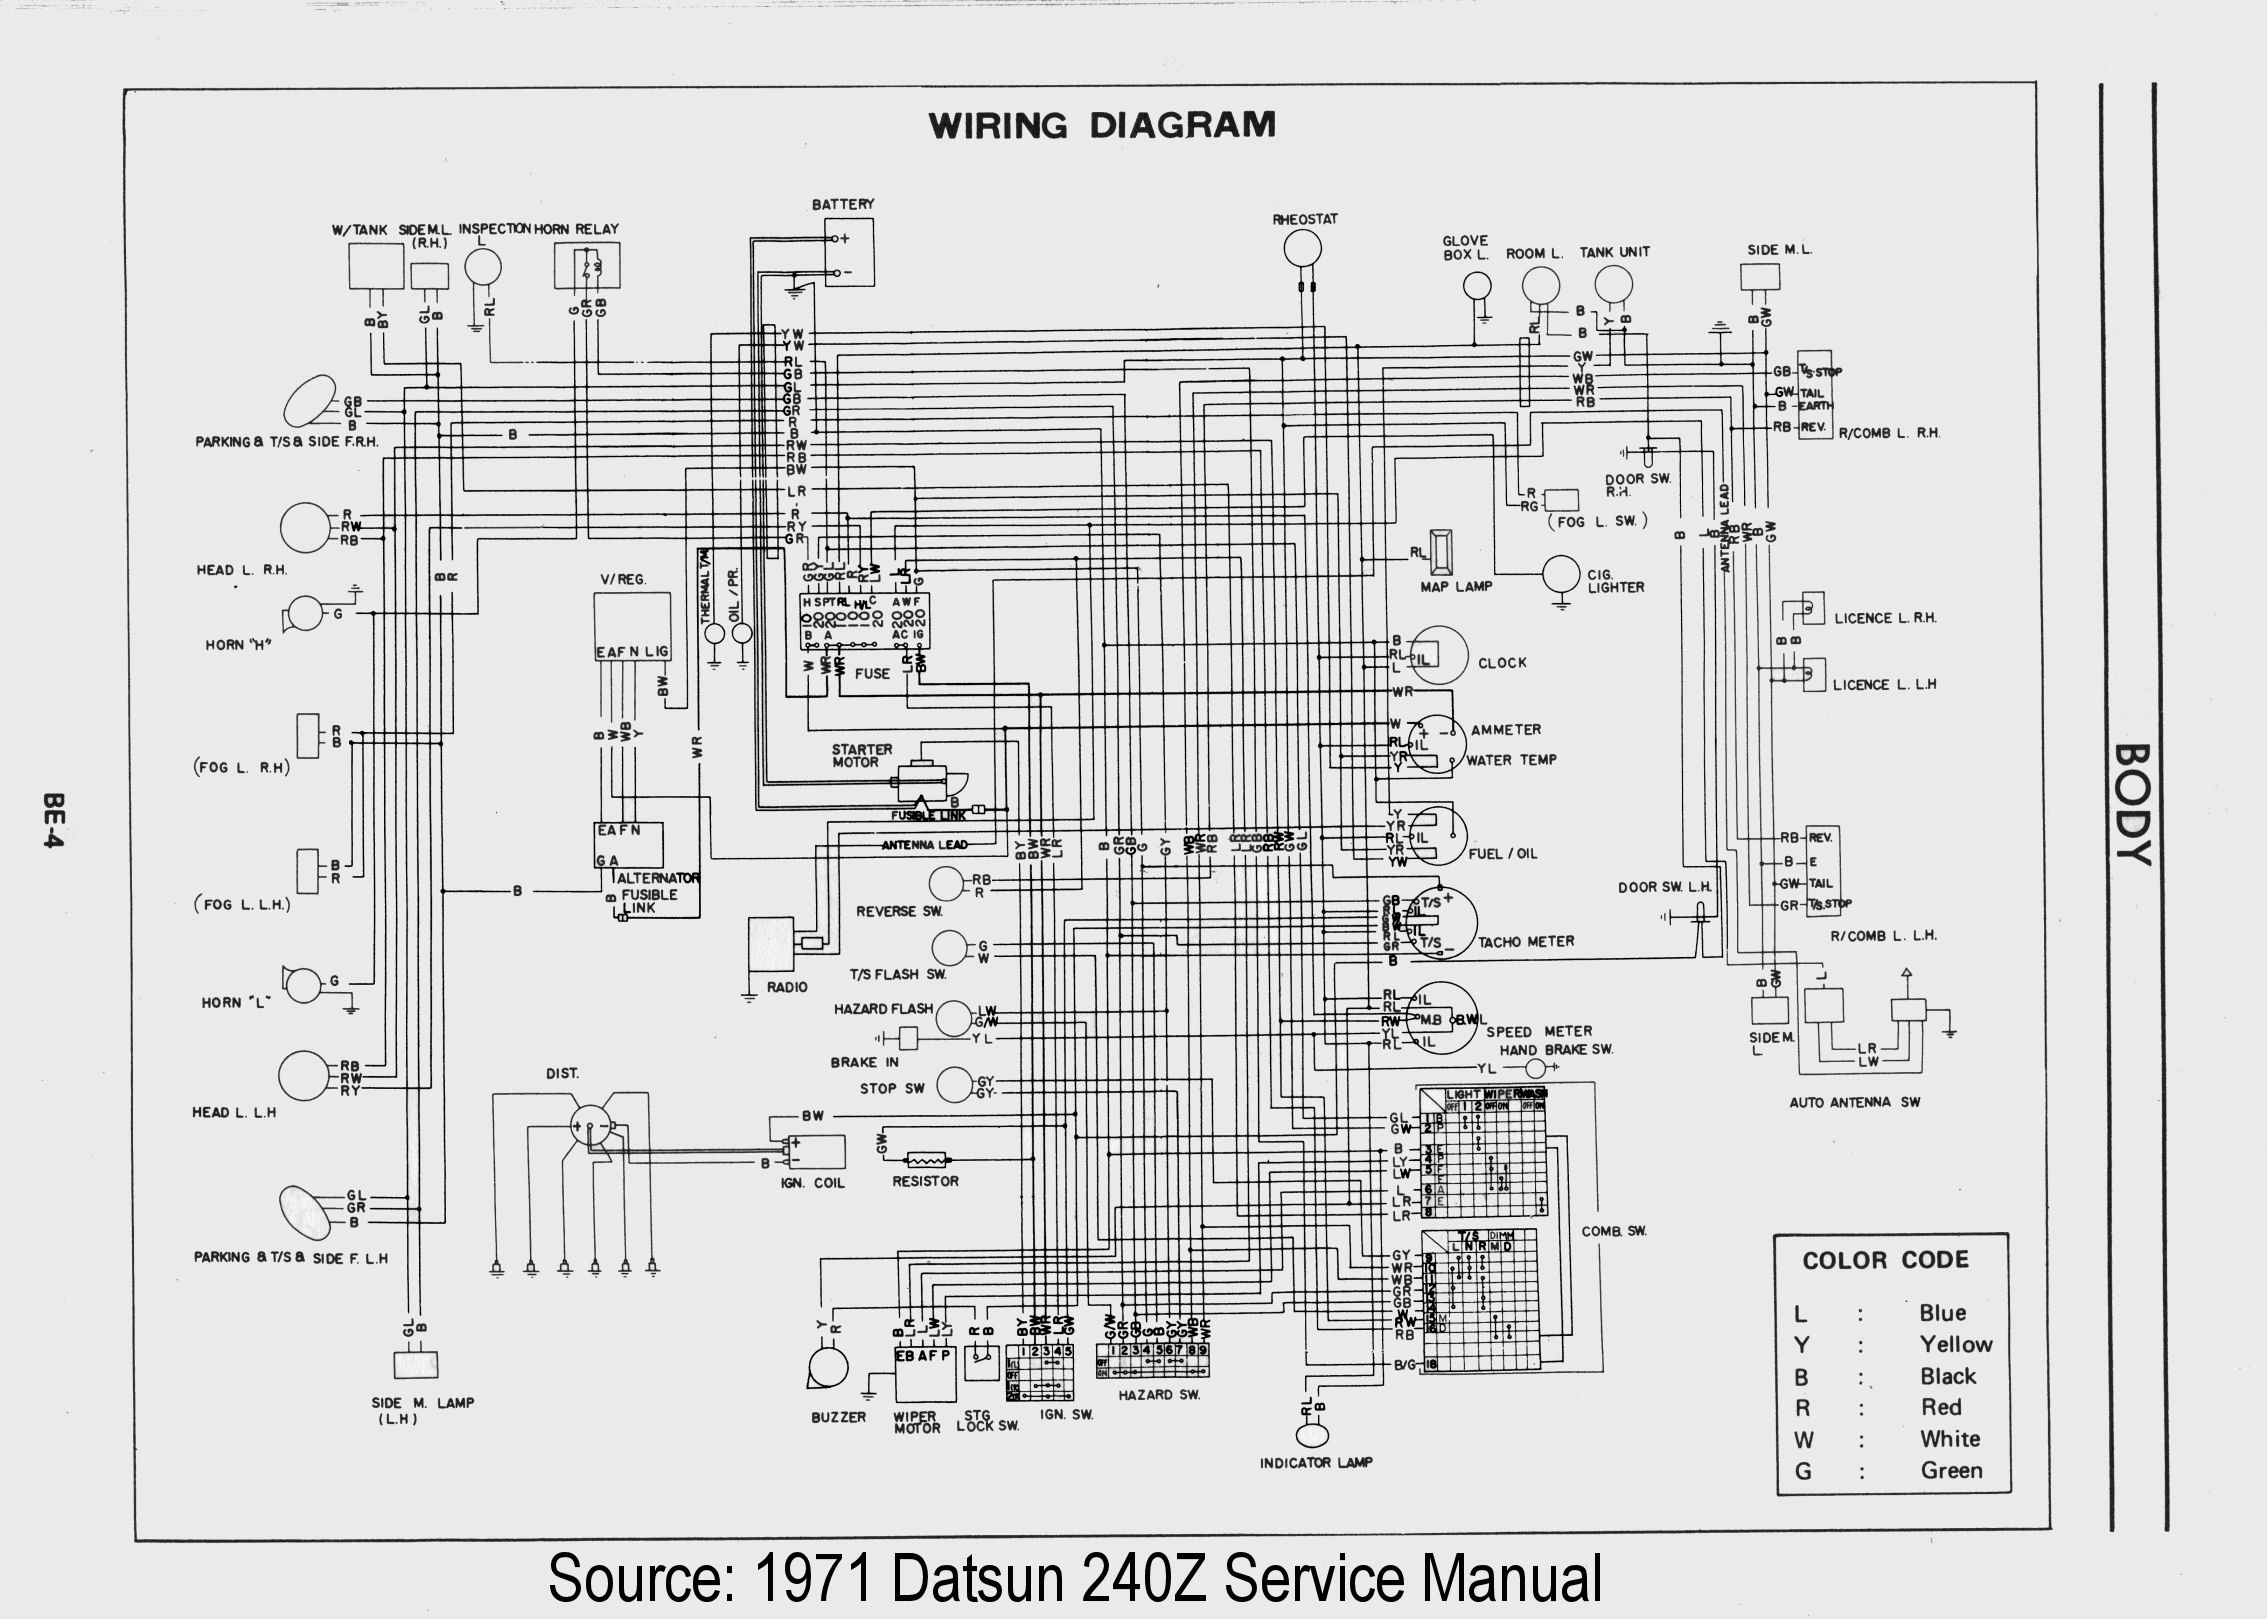 Bd0 Distributor Wiring Diagram Electrical Schematic Mack Truck ... on international 4300 wiring-diagram, international 4700 fuse diagram, international truck diagram, international 4700 dt466e diagram, international navistar parts diagrams, international farmall m wiring-diagram, international 4700 engine diagram, international 4900 wiring schematic, international dt466 engine diagram, international 4700 starter relay, 504 international tractor parts diagram, dt466e fuel system diagram, international glow plug harness, international t444e parts diagram, international 4700 fuel system, international 4700 ignition diagram, international electrical wiring diagrams, international 4700 electrical diagram, international 9200i wiring-diagram, international 4700 wire 17,